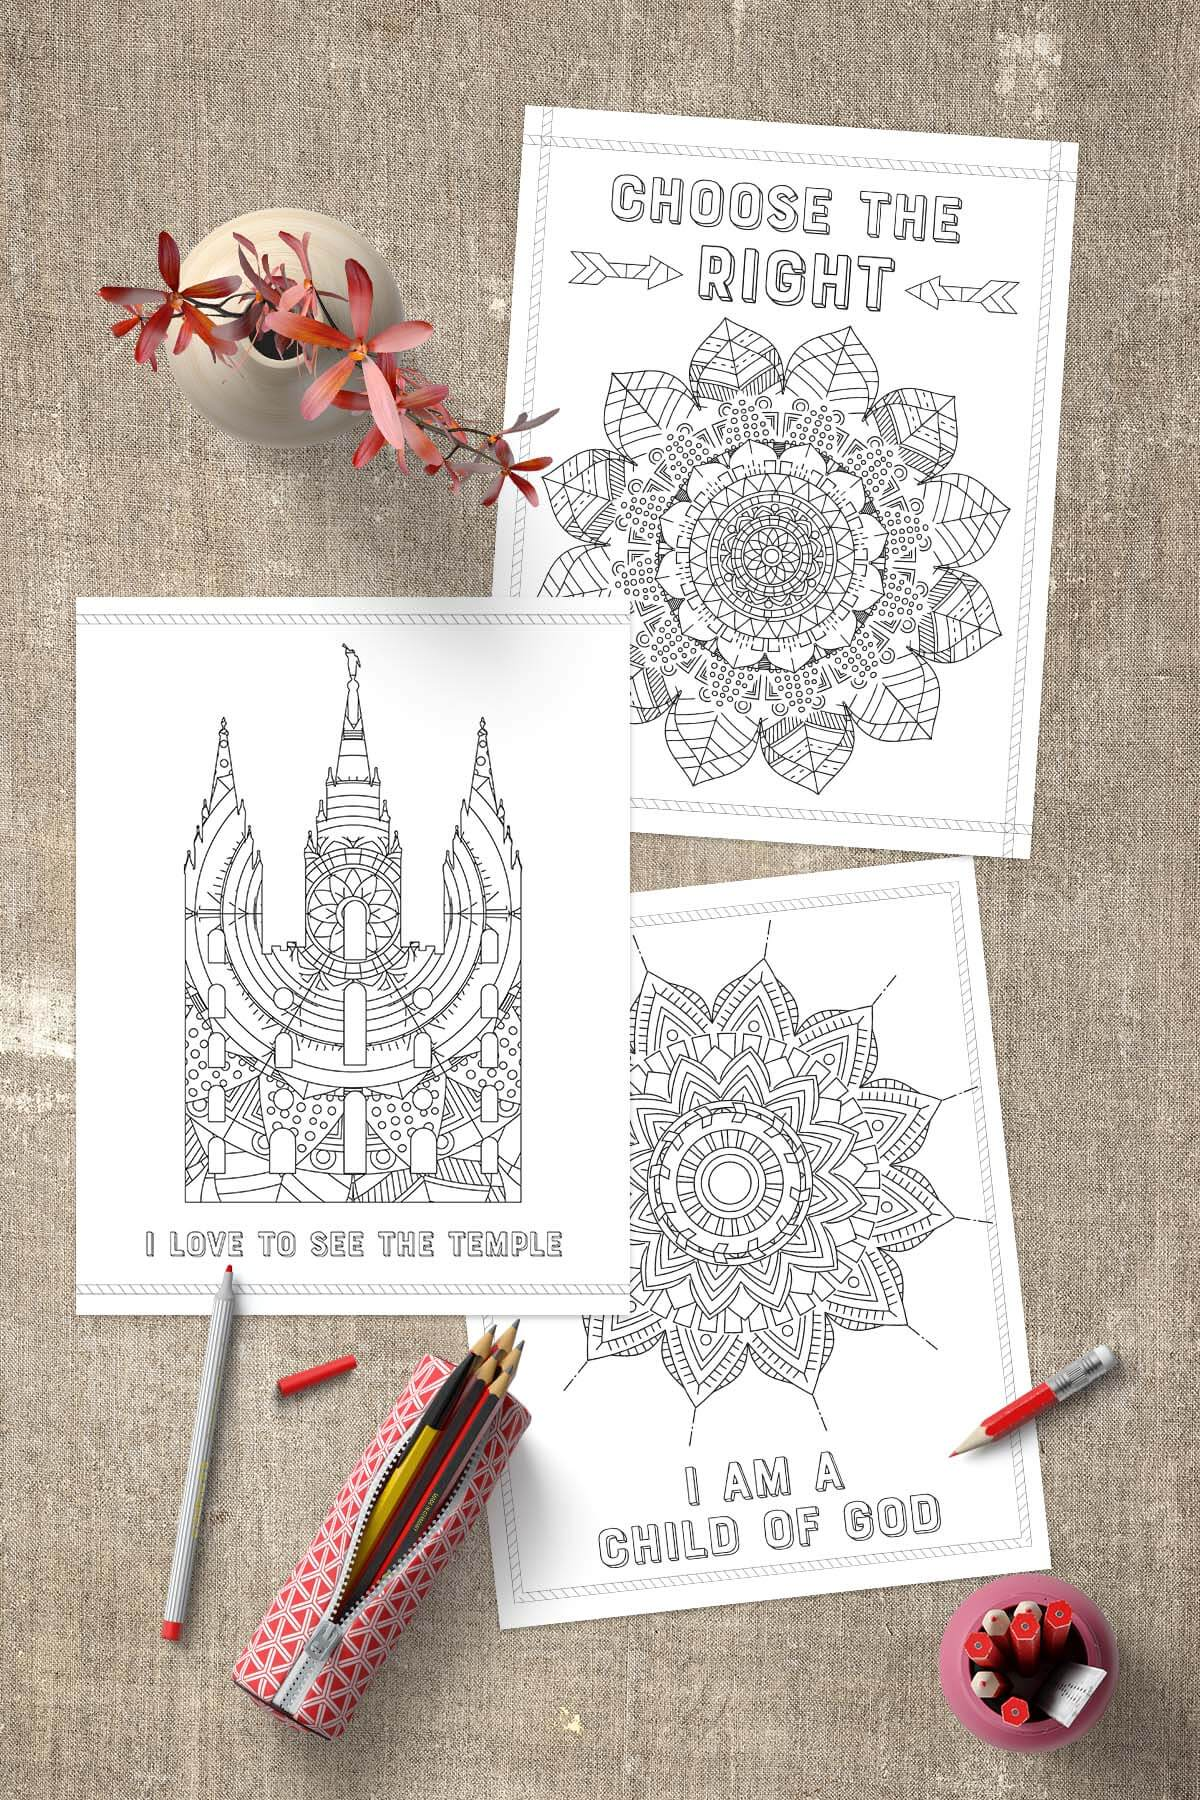 These Coloring Pages Are Life Savers I Keep Lots Of Them In My Church Bag For Those Times When It Seems To The Kiddos That